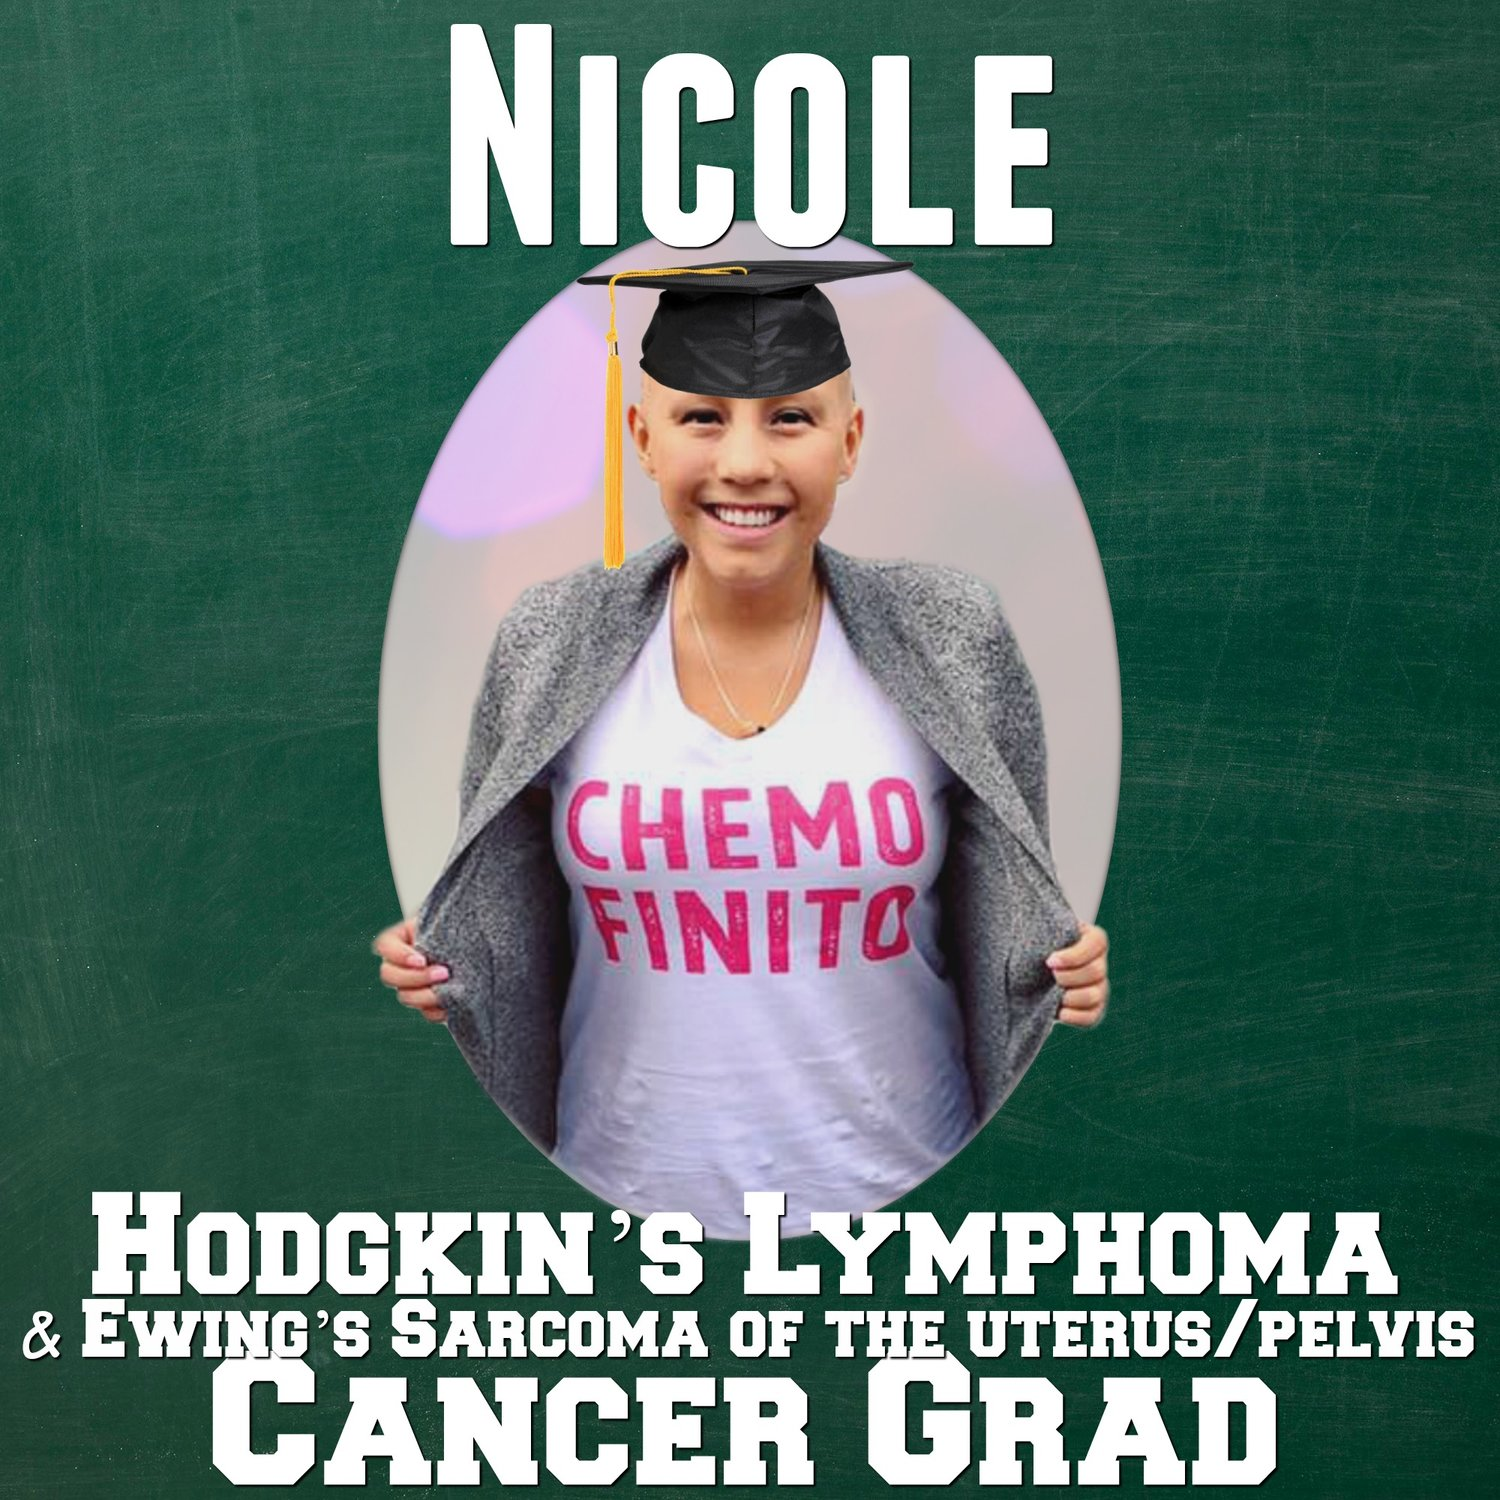 Cancer Gradhodgkins Lymphoma And Ewings Sarcoma Grad Nicole Munoz